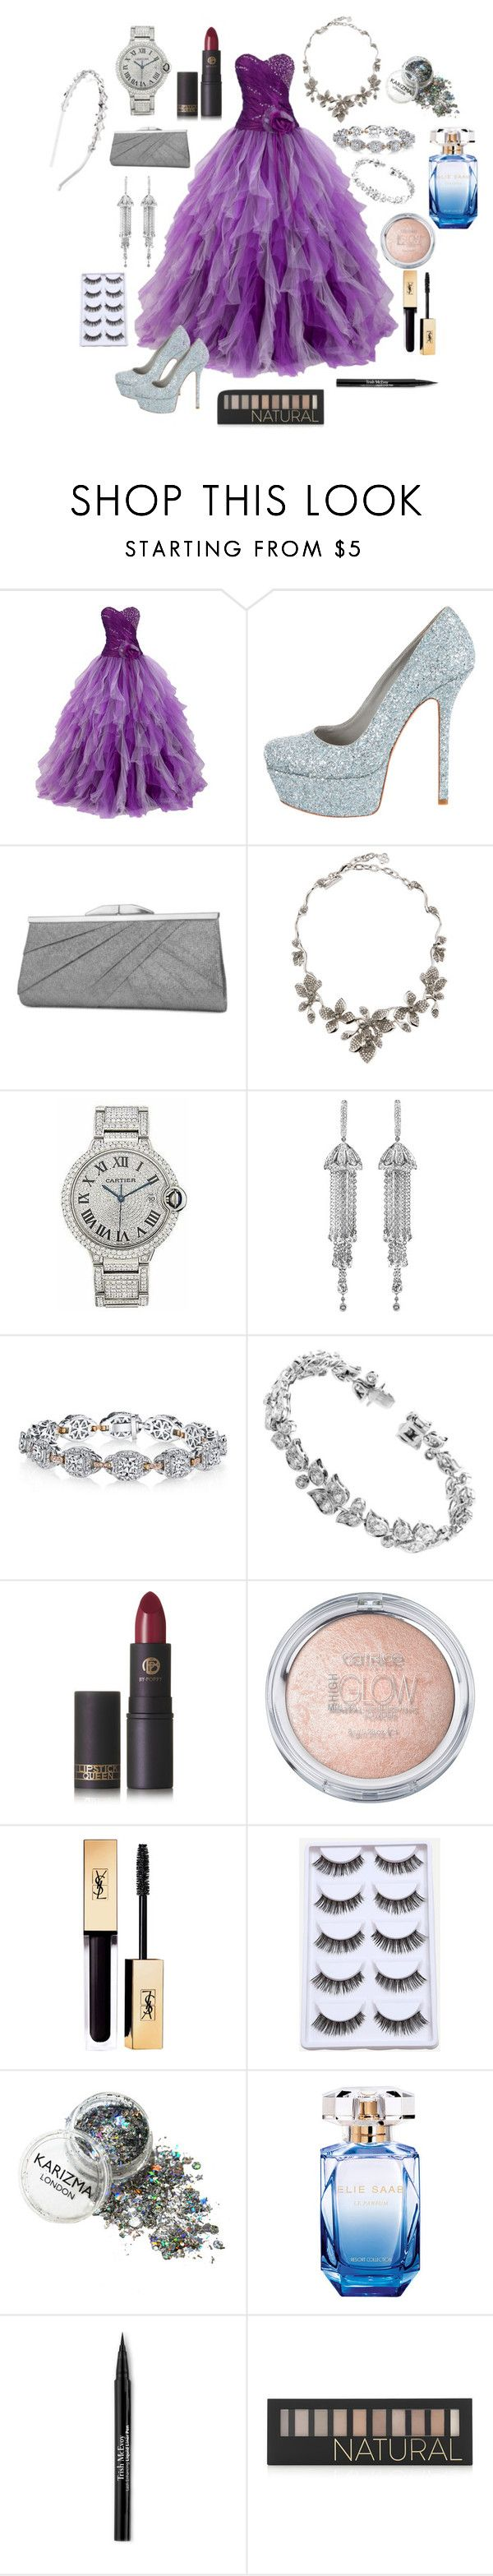 """Prom in high school"" by shaynae ❤ liked on Polyvore featuring Alice + Olivia, Jessica McClintock, Oscar de la Renta, Cartier, Shay, Harry Kotlar, Lipstick Queen, Elie Saab, Trish McEvoy and Forever 21"